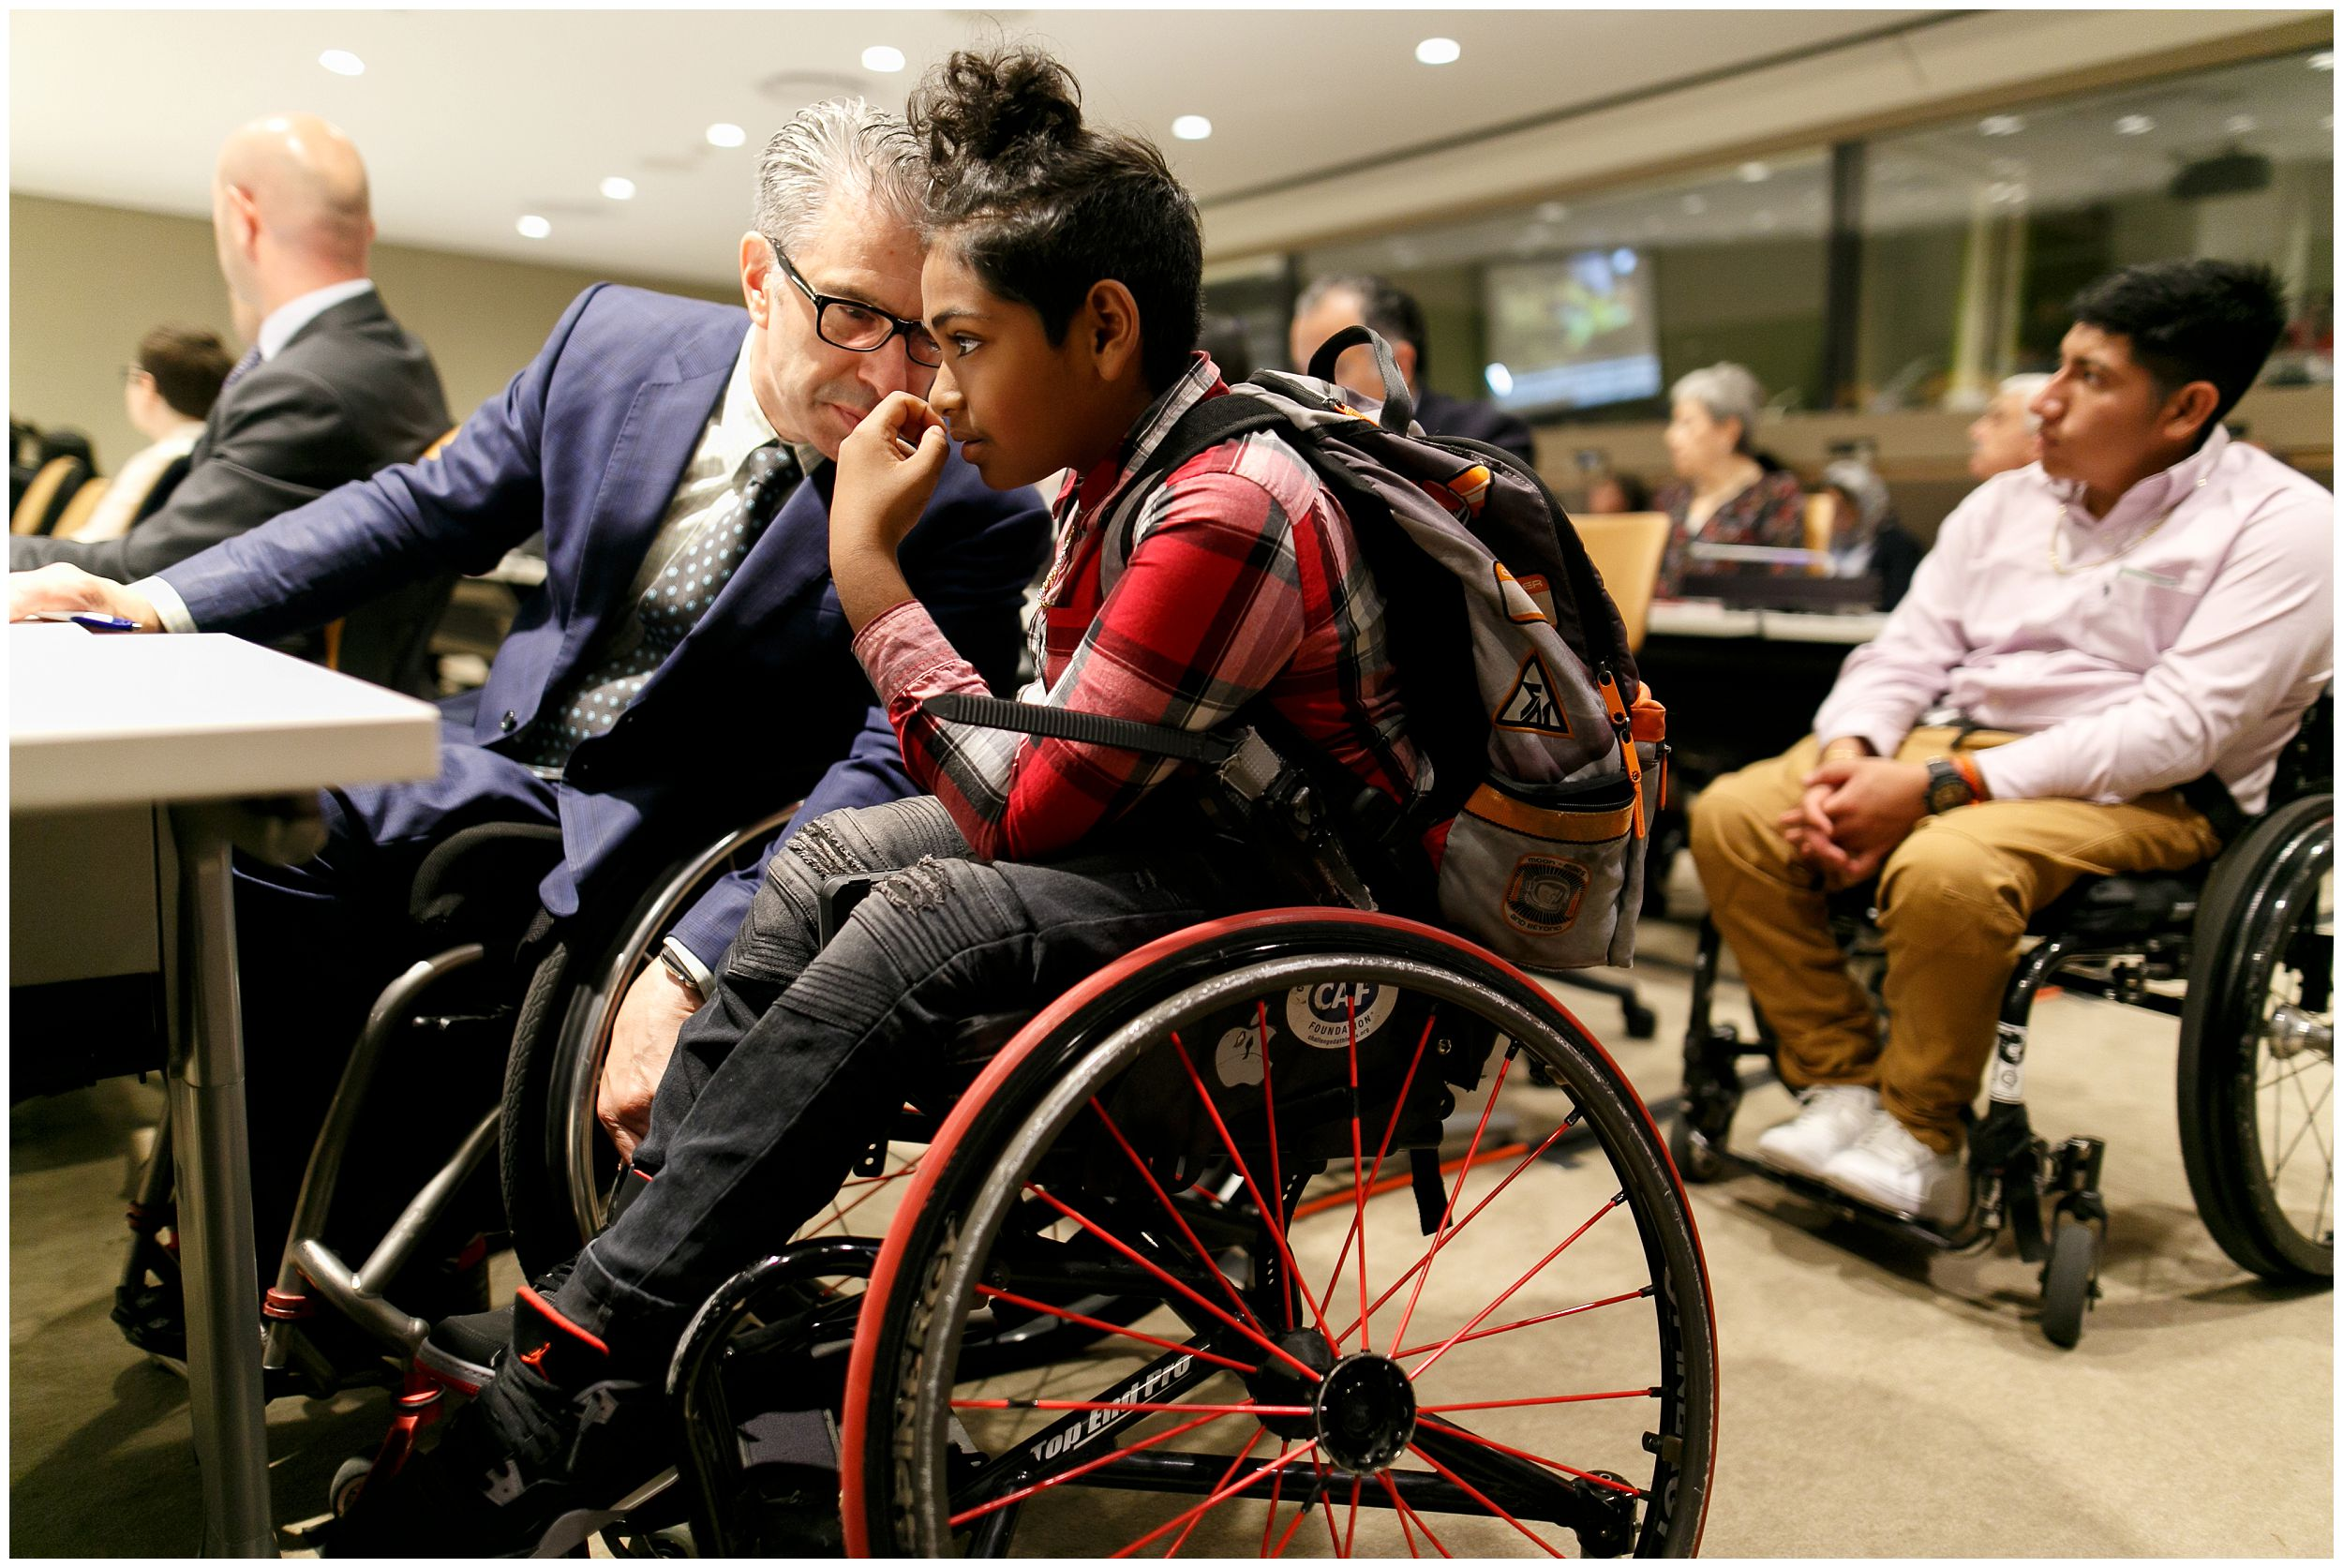 Sports-for-all-the-Convention-on-the-Rights-of-Persons-with-Disabilities-UNDESA-006.jpg